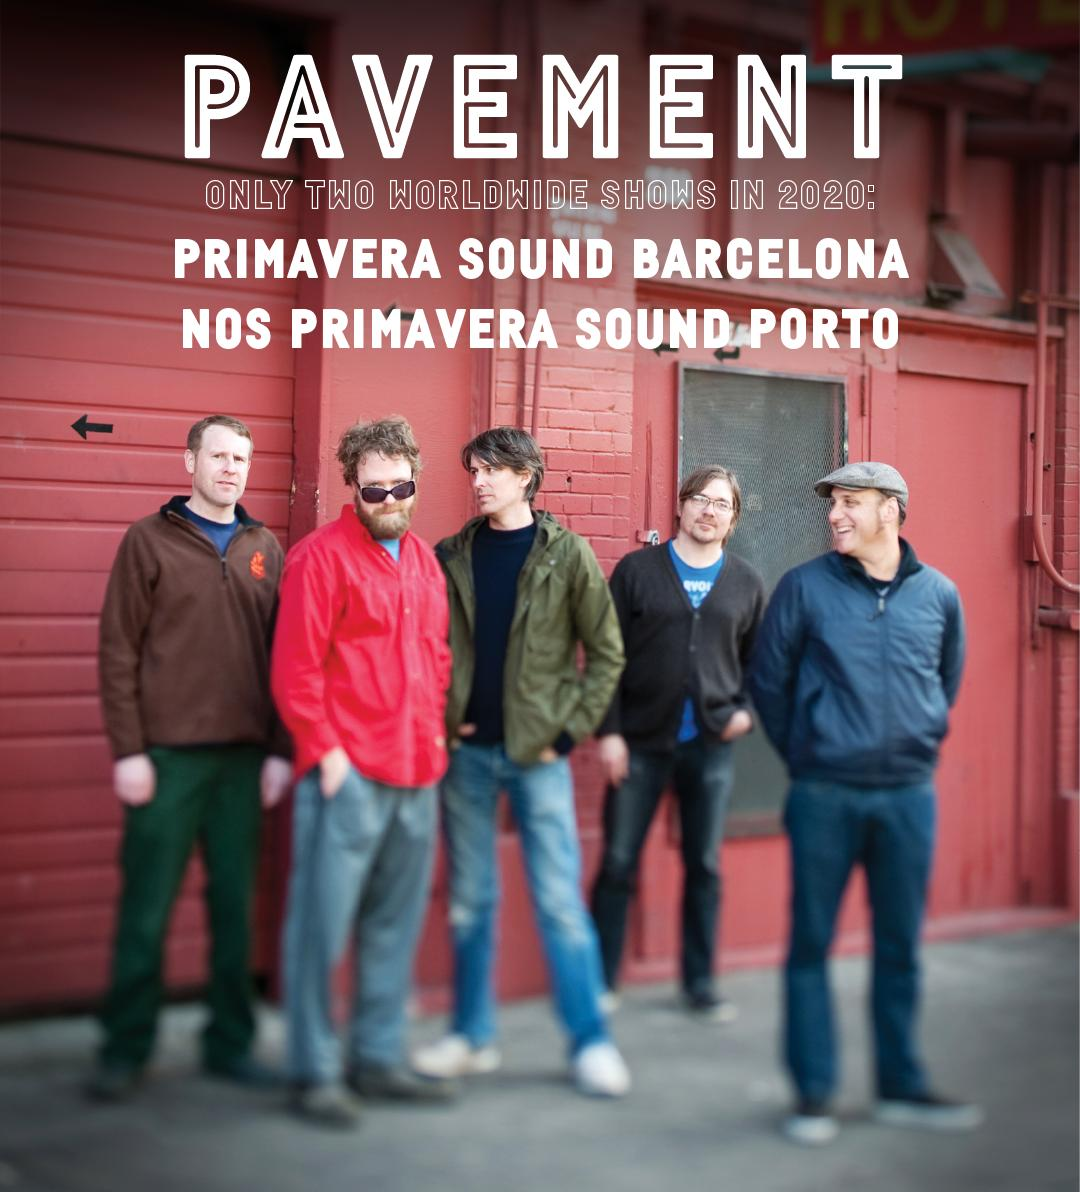 Pavement reunion shows